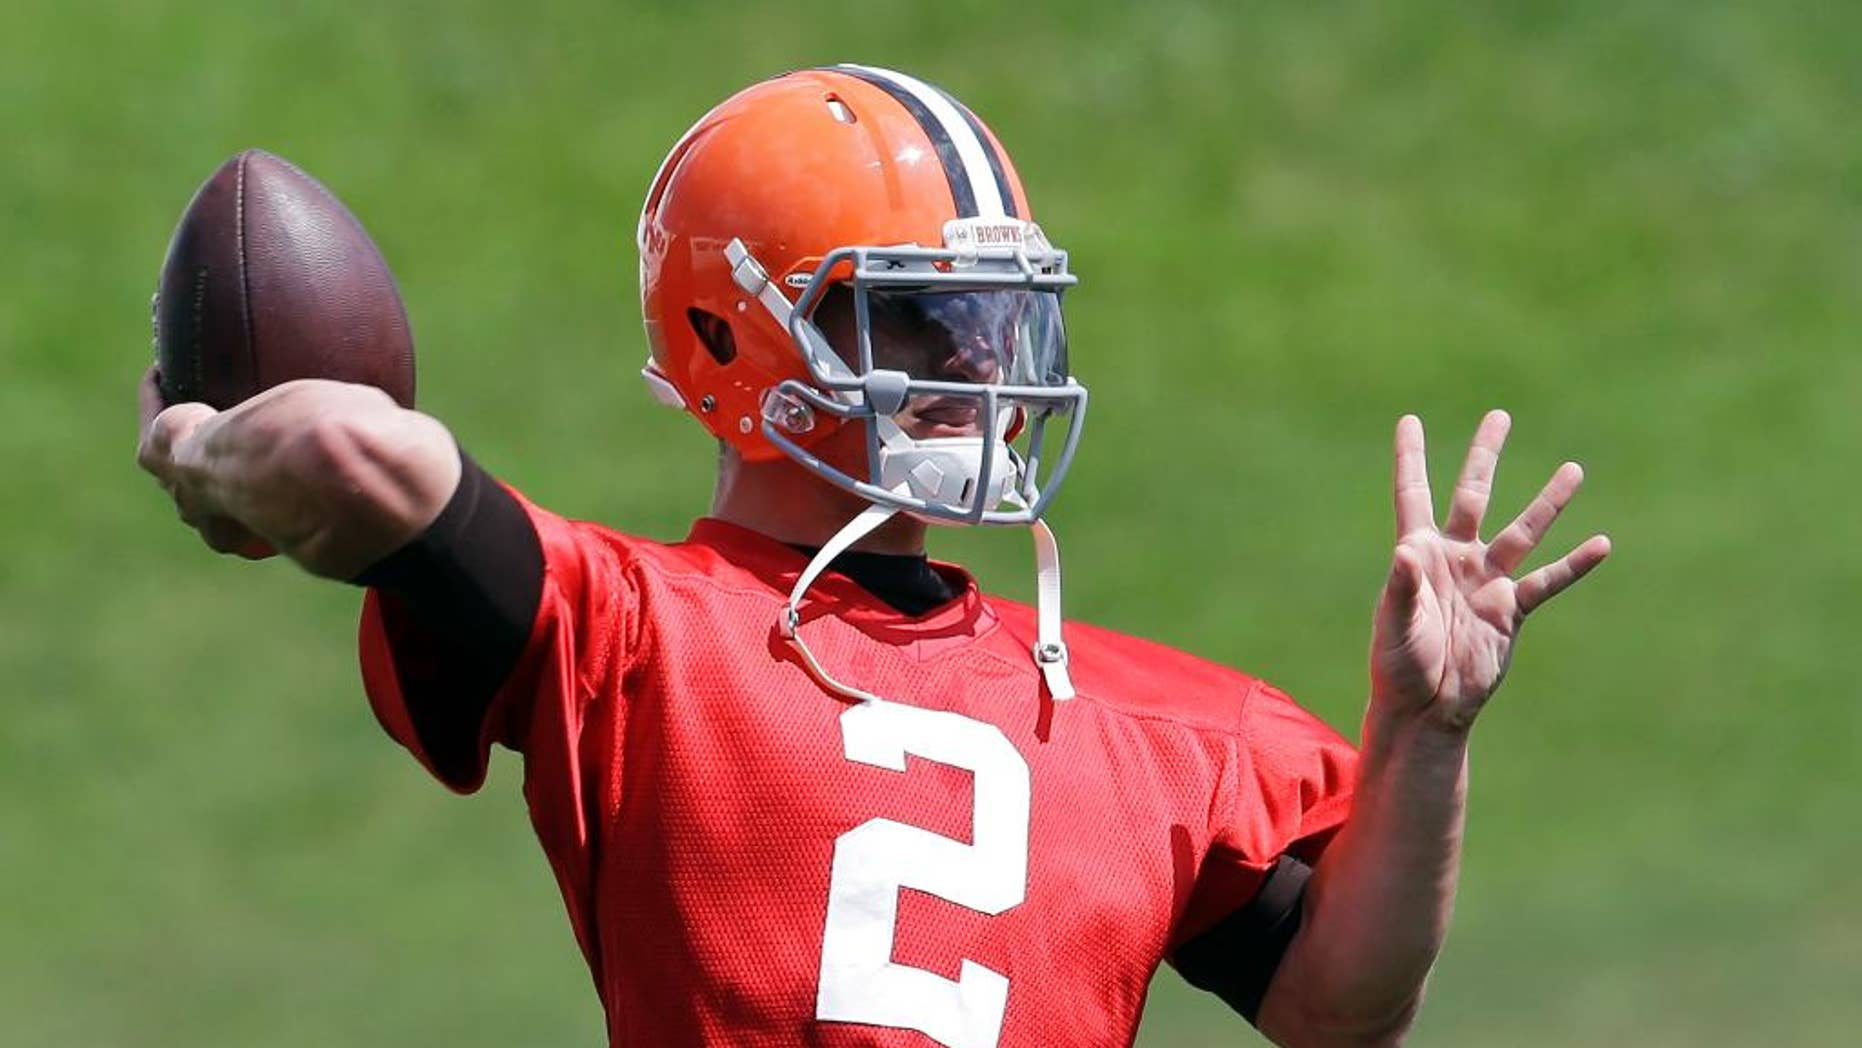 Cleveland Browns quarterback Johnny Manziel passes during practice at the NFL football team's facility in Berea, Ohio Wednesday, Sept. 3, 2014. Manziel begins the 2014 season on the bench behind starter Brian Hoyer. (AP Photo/Mark Duncan)